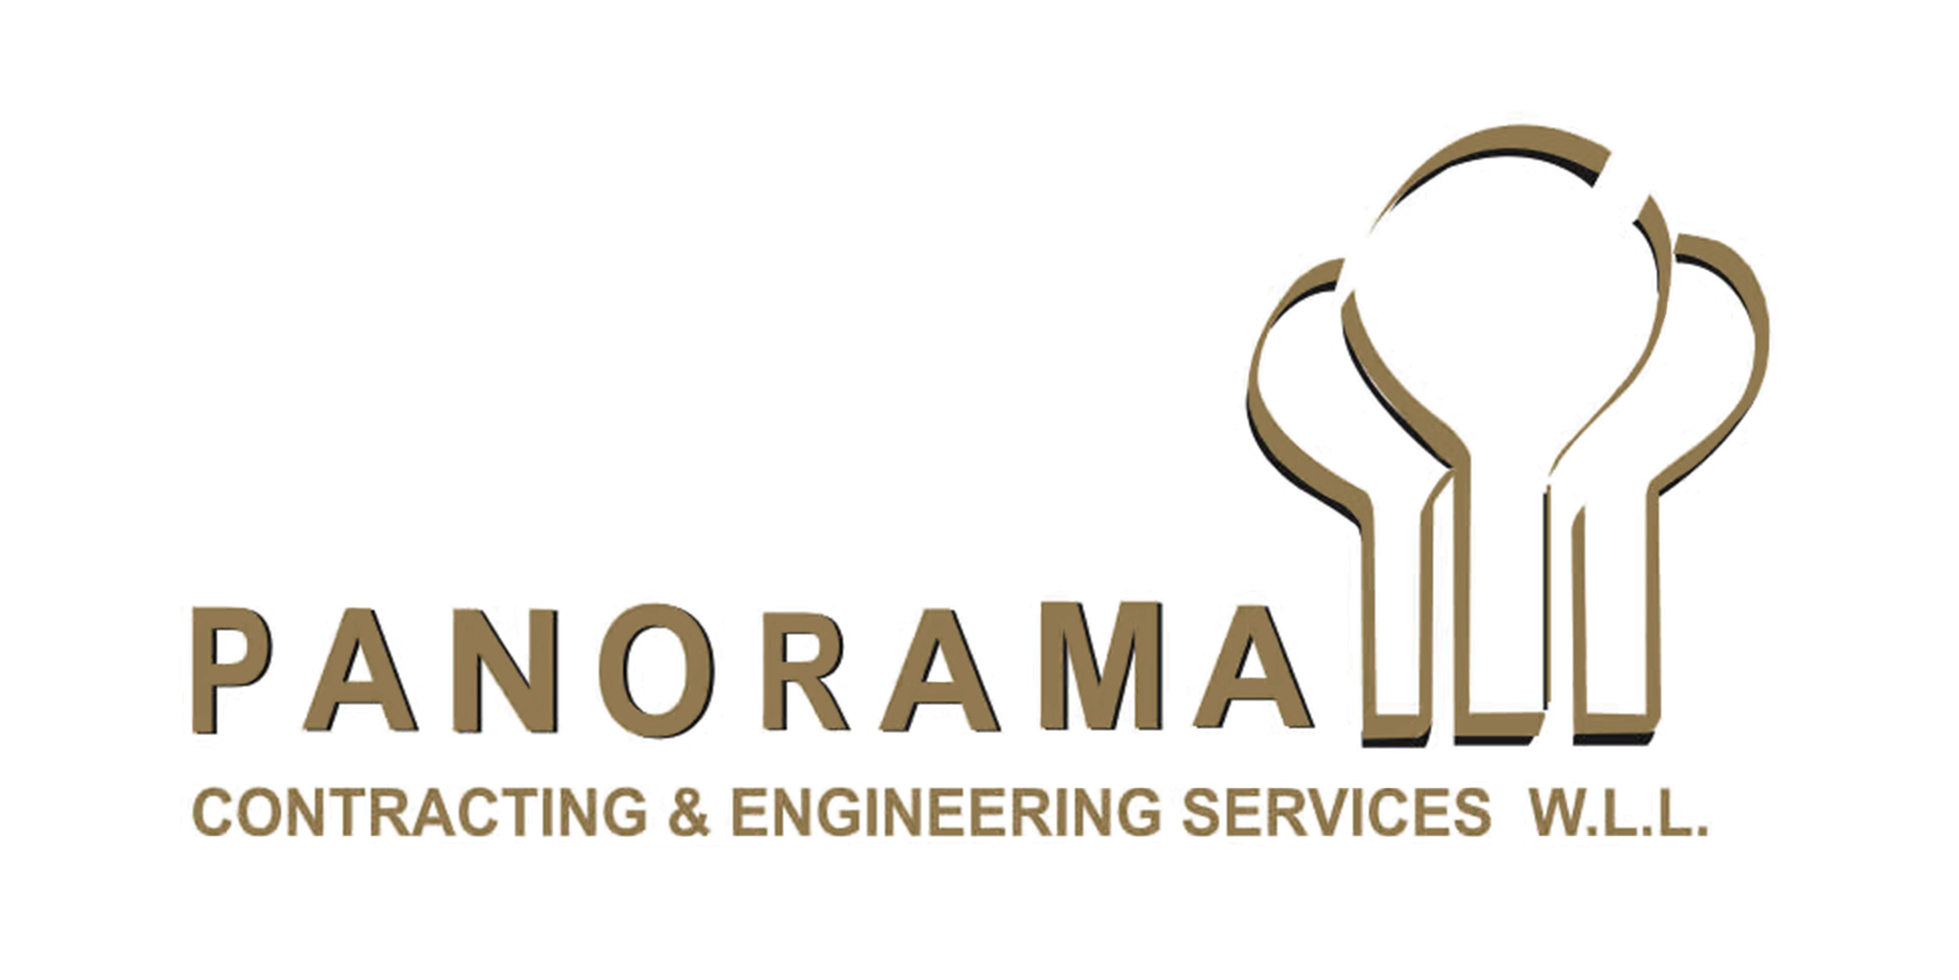 Panorama Contracting & Engineering Services W.L.L.